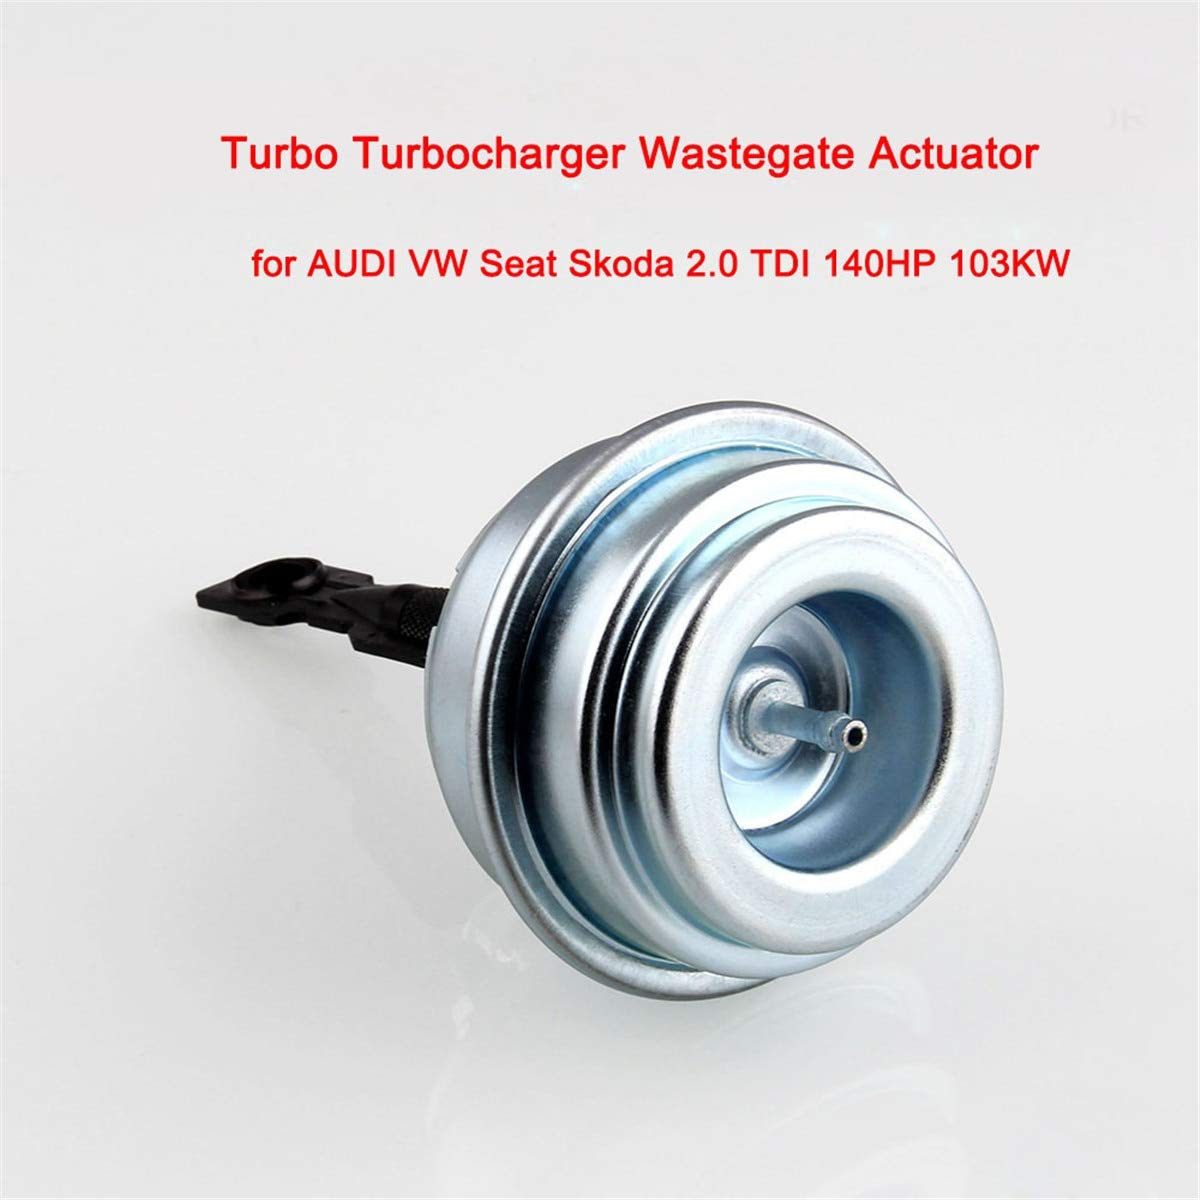 Amazon.com : Fincos Turbo Wastegate Vacuum Actuator for VW 1.9 TDI ALH AHF AUY GT1749V 434855-0015 : Sports & Outdoors